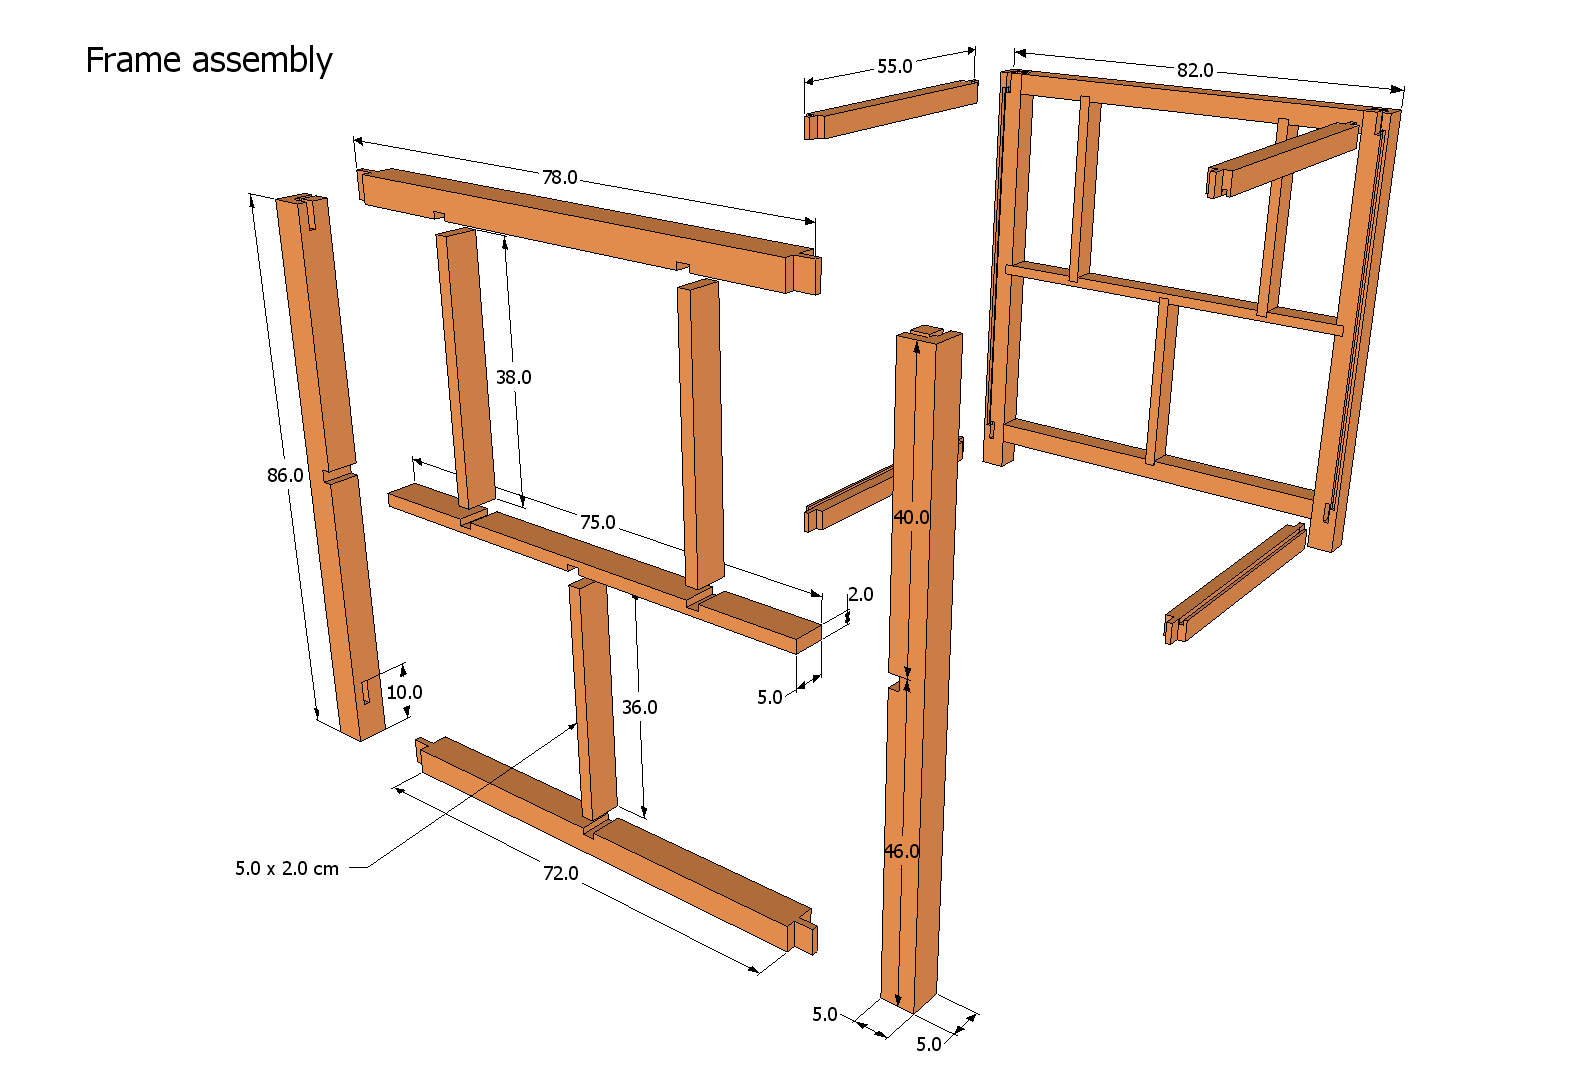 A Frame Hoist Plans http://woodgears.ca/router_table/plans/index.html